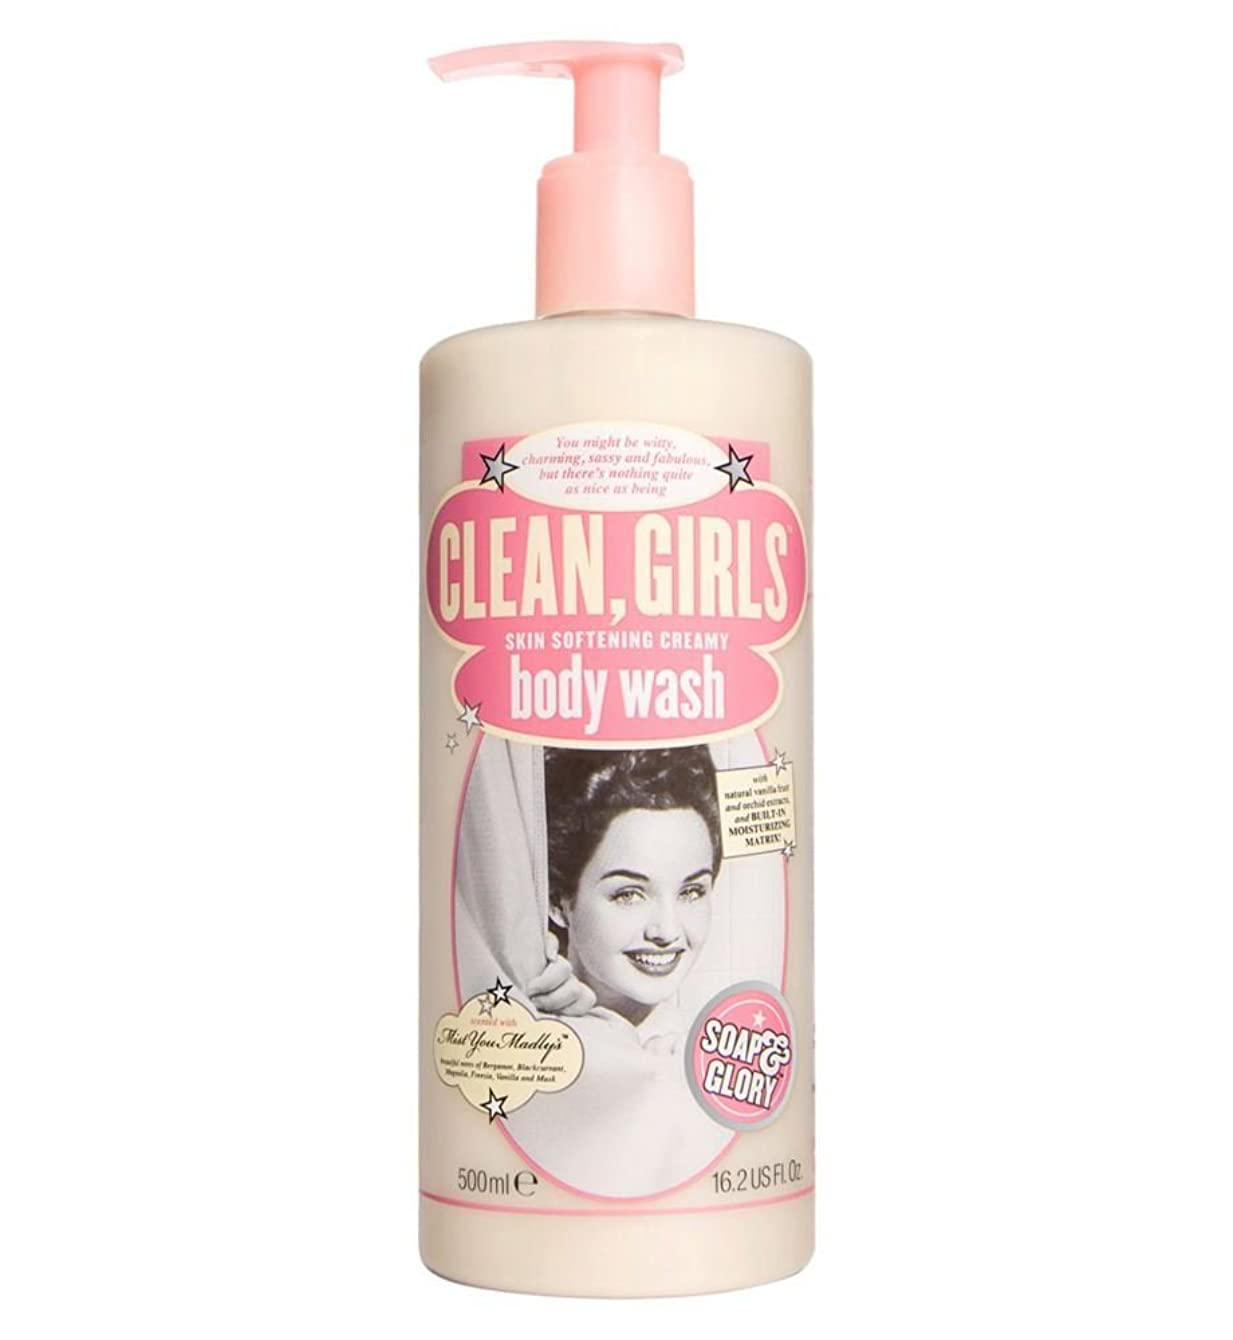 本当にはねかける句読点Soap & Glory Clean Girls Body Wash 500ml by Soap & Glory [並行輸入品]